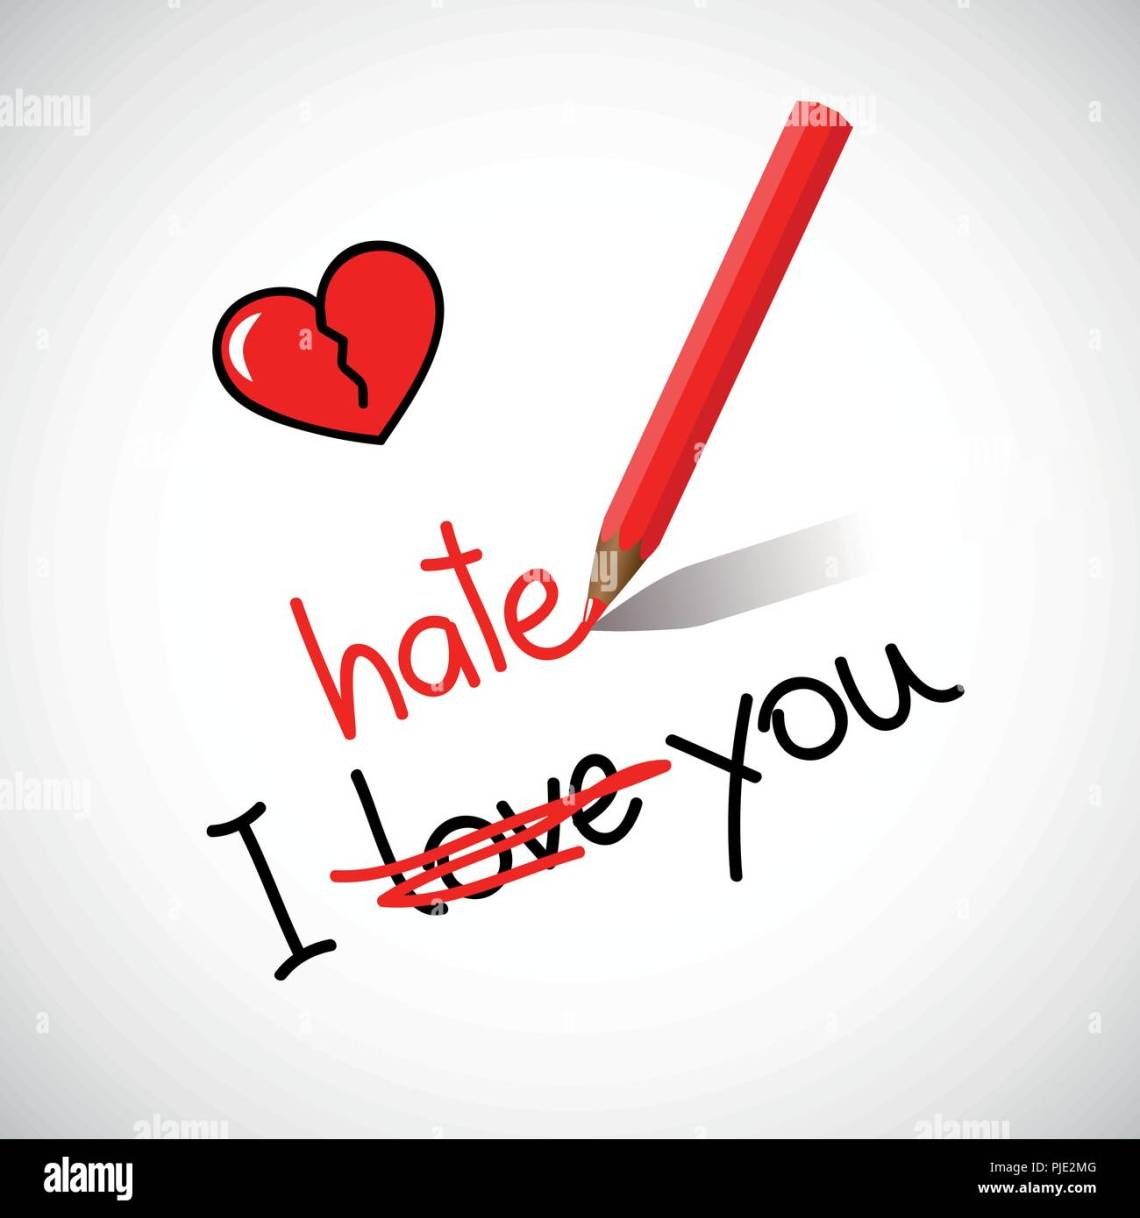 Download I Hate You High Resolution Stock Photography and Images ...